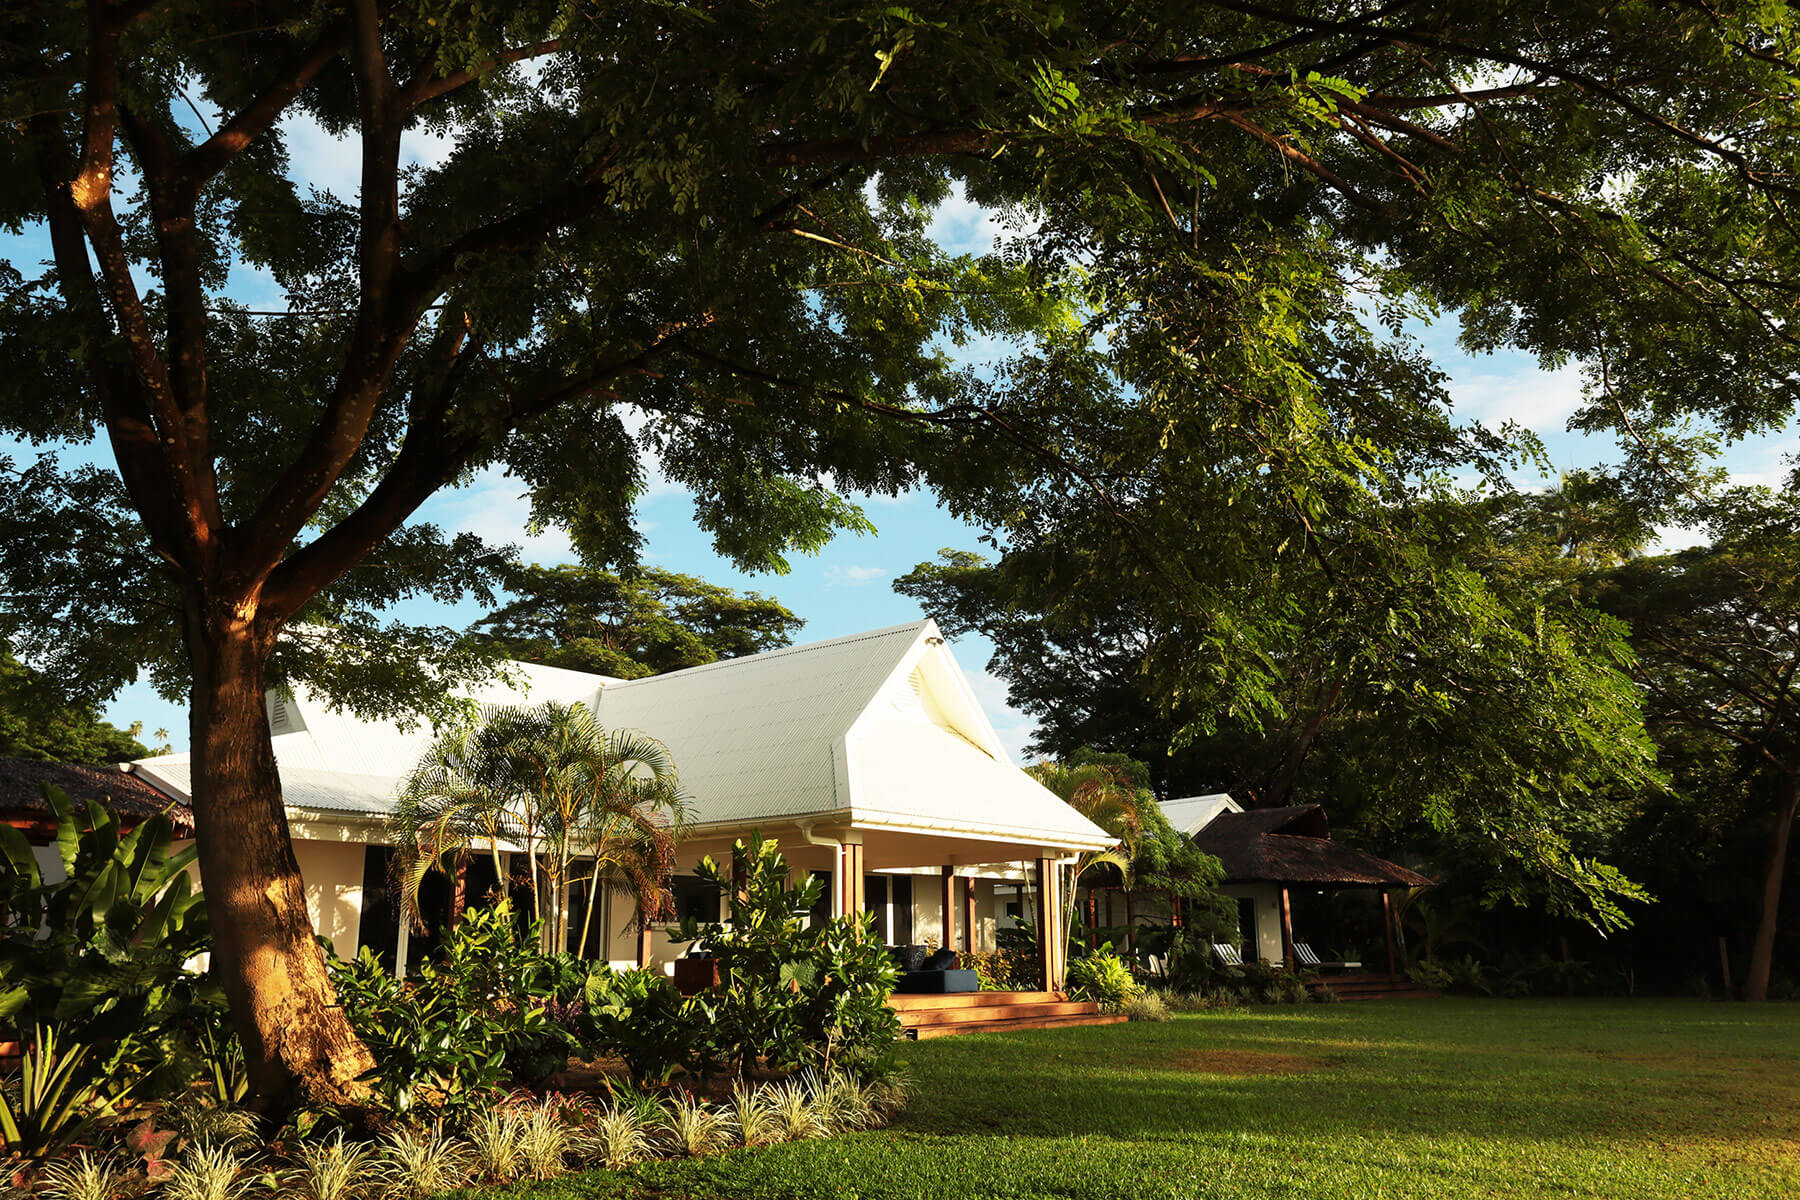 Santo Saffire Accommodation in Vanuatu